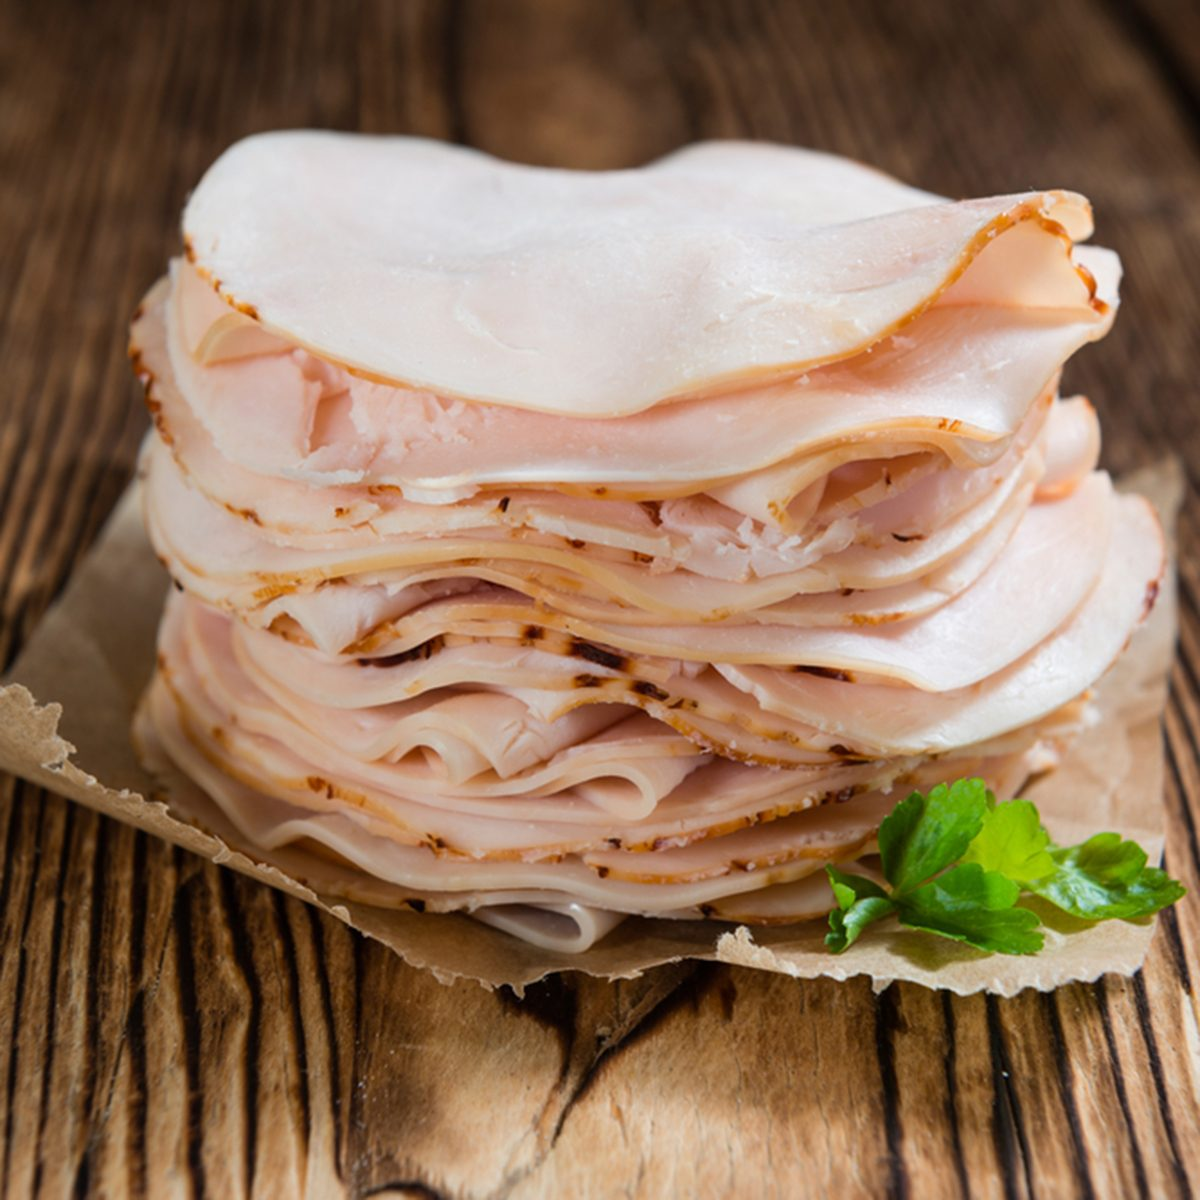 Sliced Chicken Breast fillet (selective focus) on wooden background; Shutterstock ID 381413266; Job (TFH, TOH, RD, BNB, CWM, CM): TOH